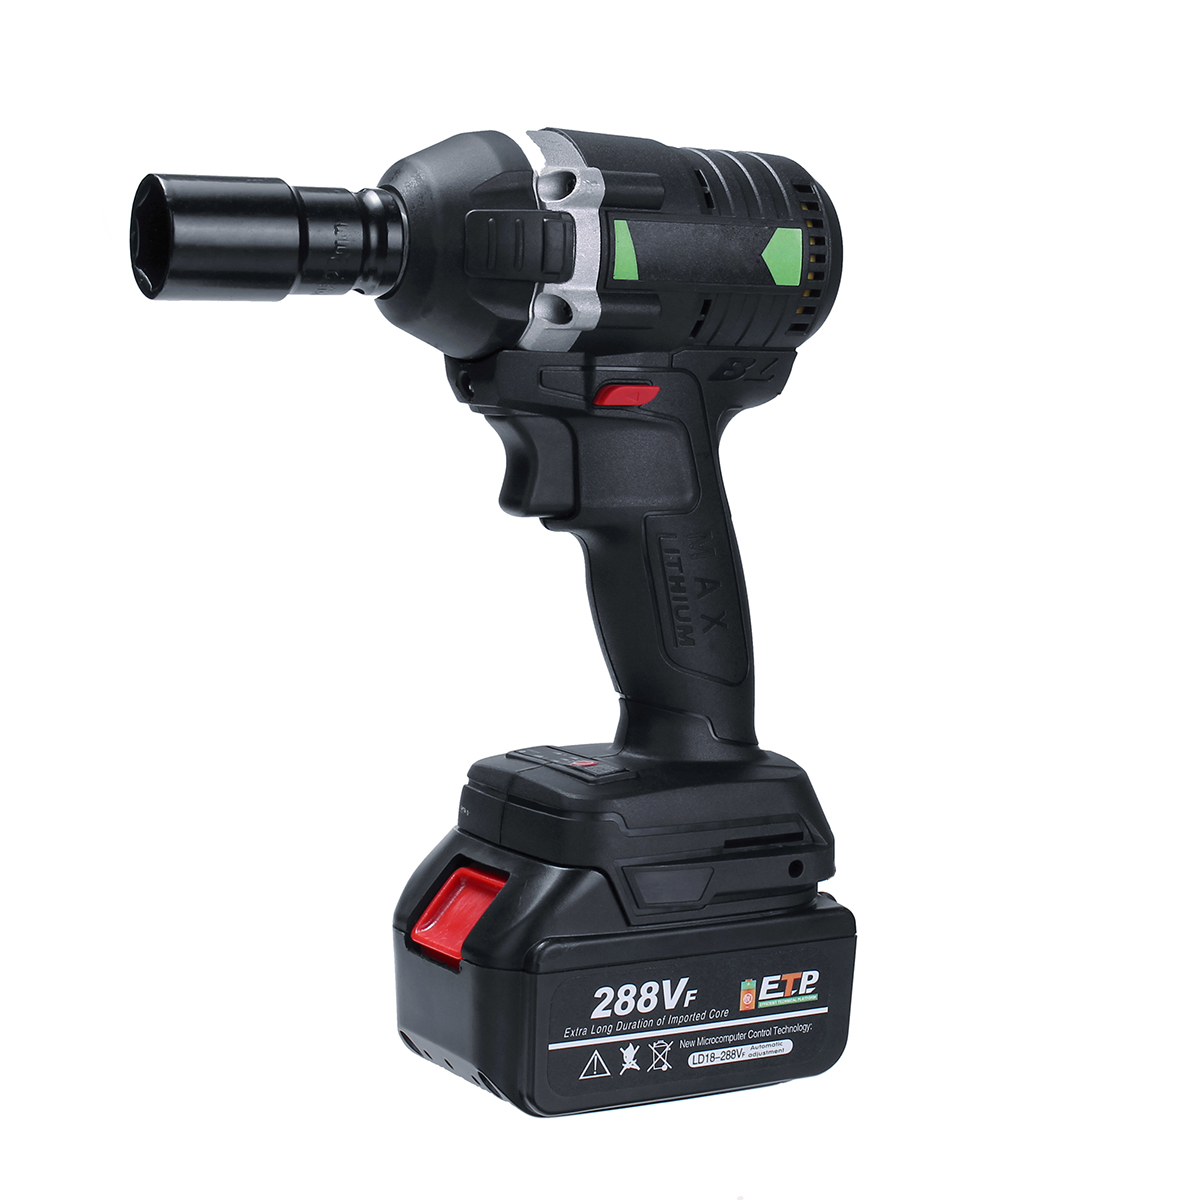 630N.m 288VF Cordless Electric Impact Wrench Electric Wrench Brush With 1x Li-ion Battery Power Tools